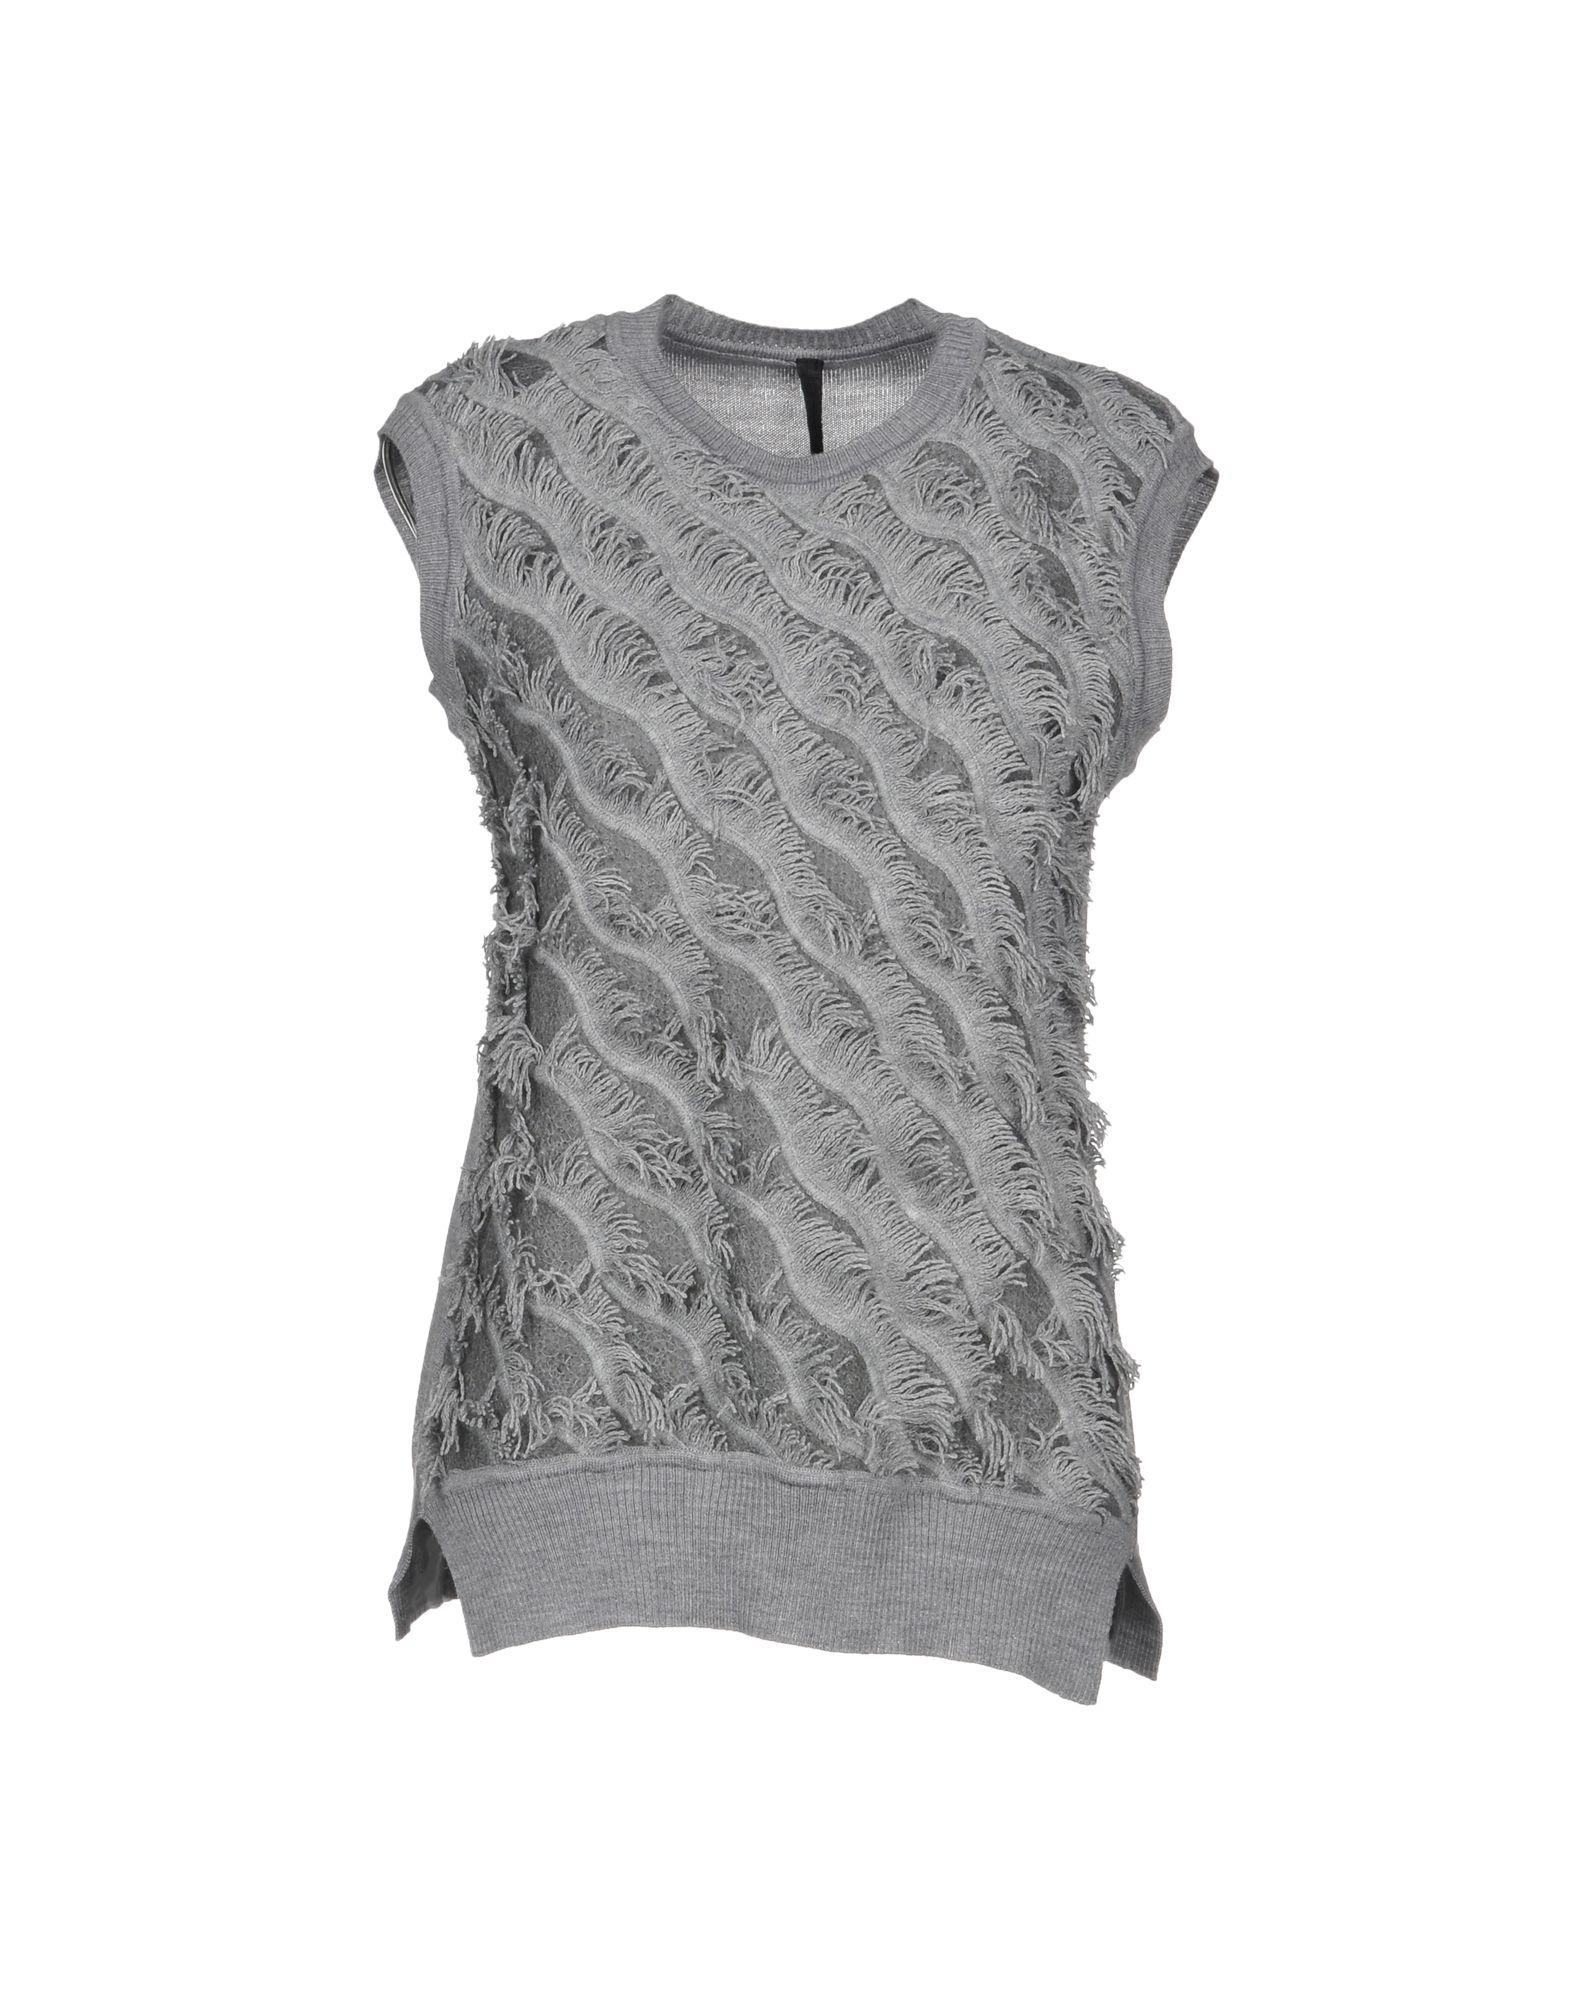 KNITWEAR - Jumpers Teresa Dainelli Buy Clearance Supply With Paypal Cheap Price WGmuD